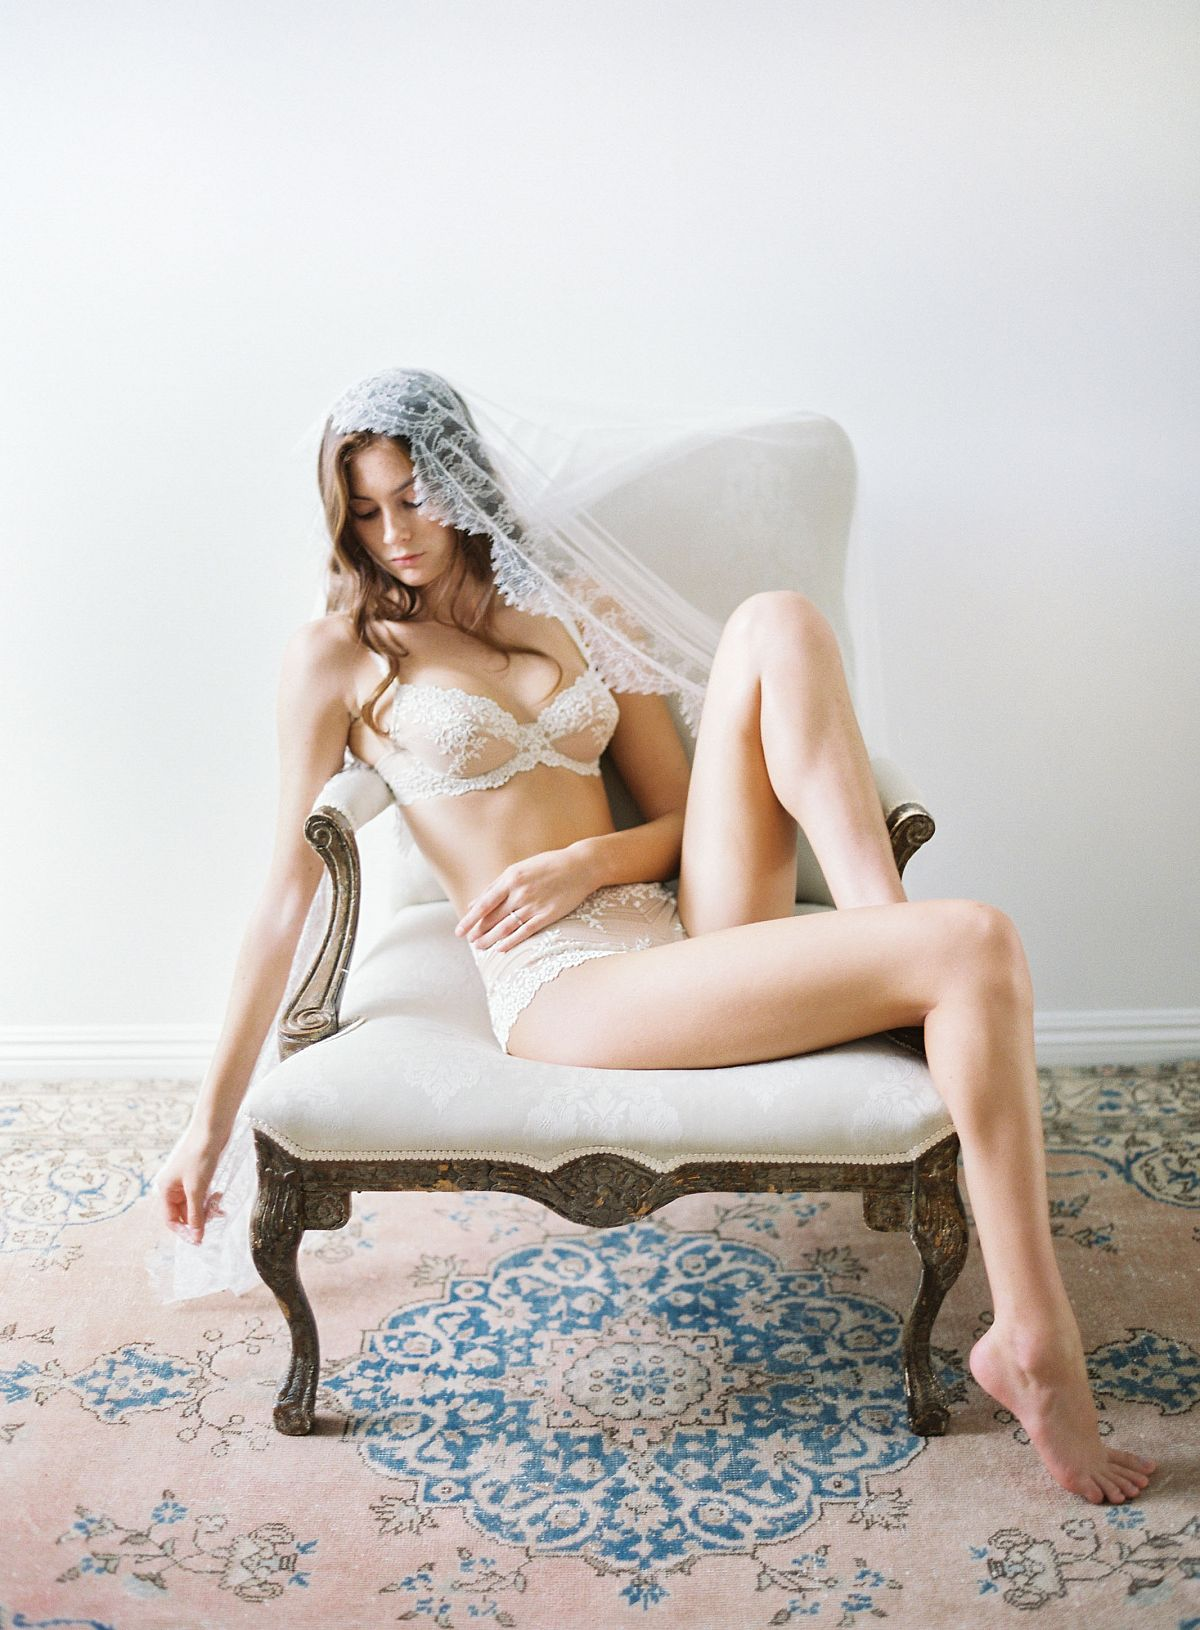 Boudoir Session with Christine Clark with styling by Designs by Hemingway